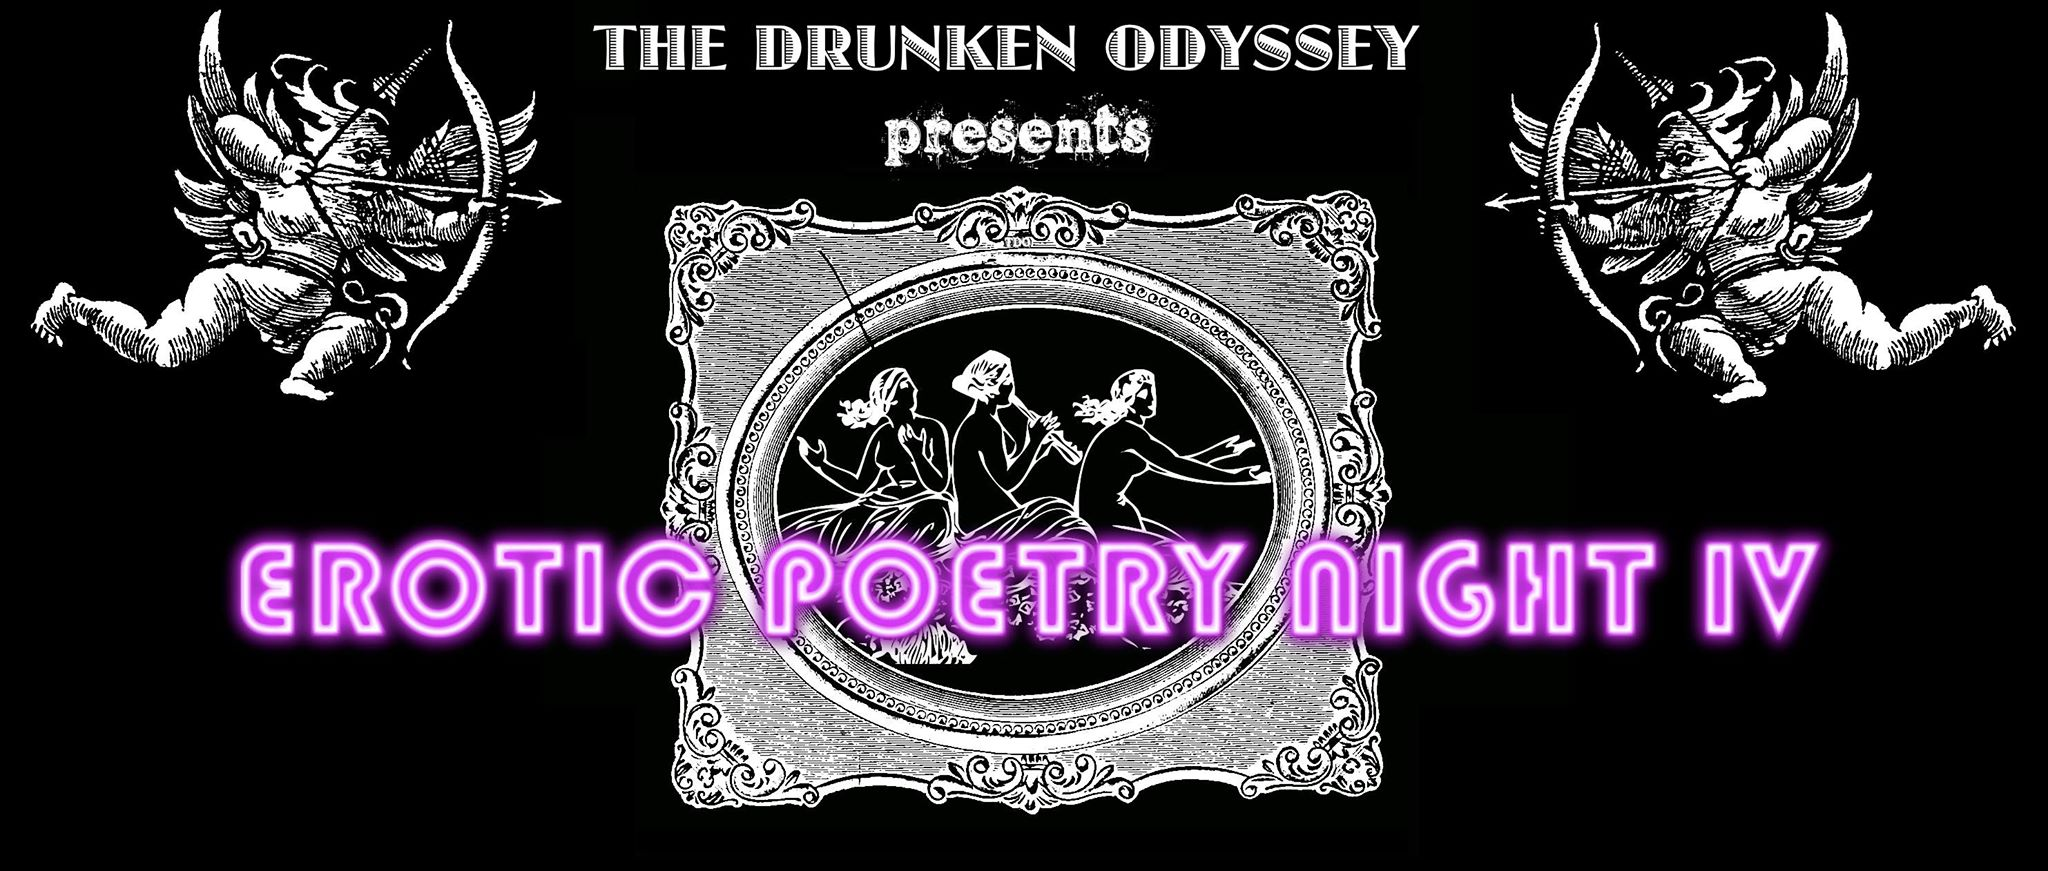 Erotic Poetry Night IV